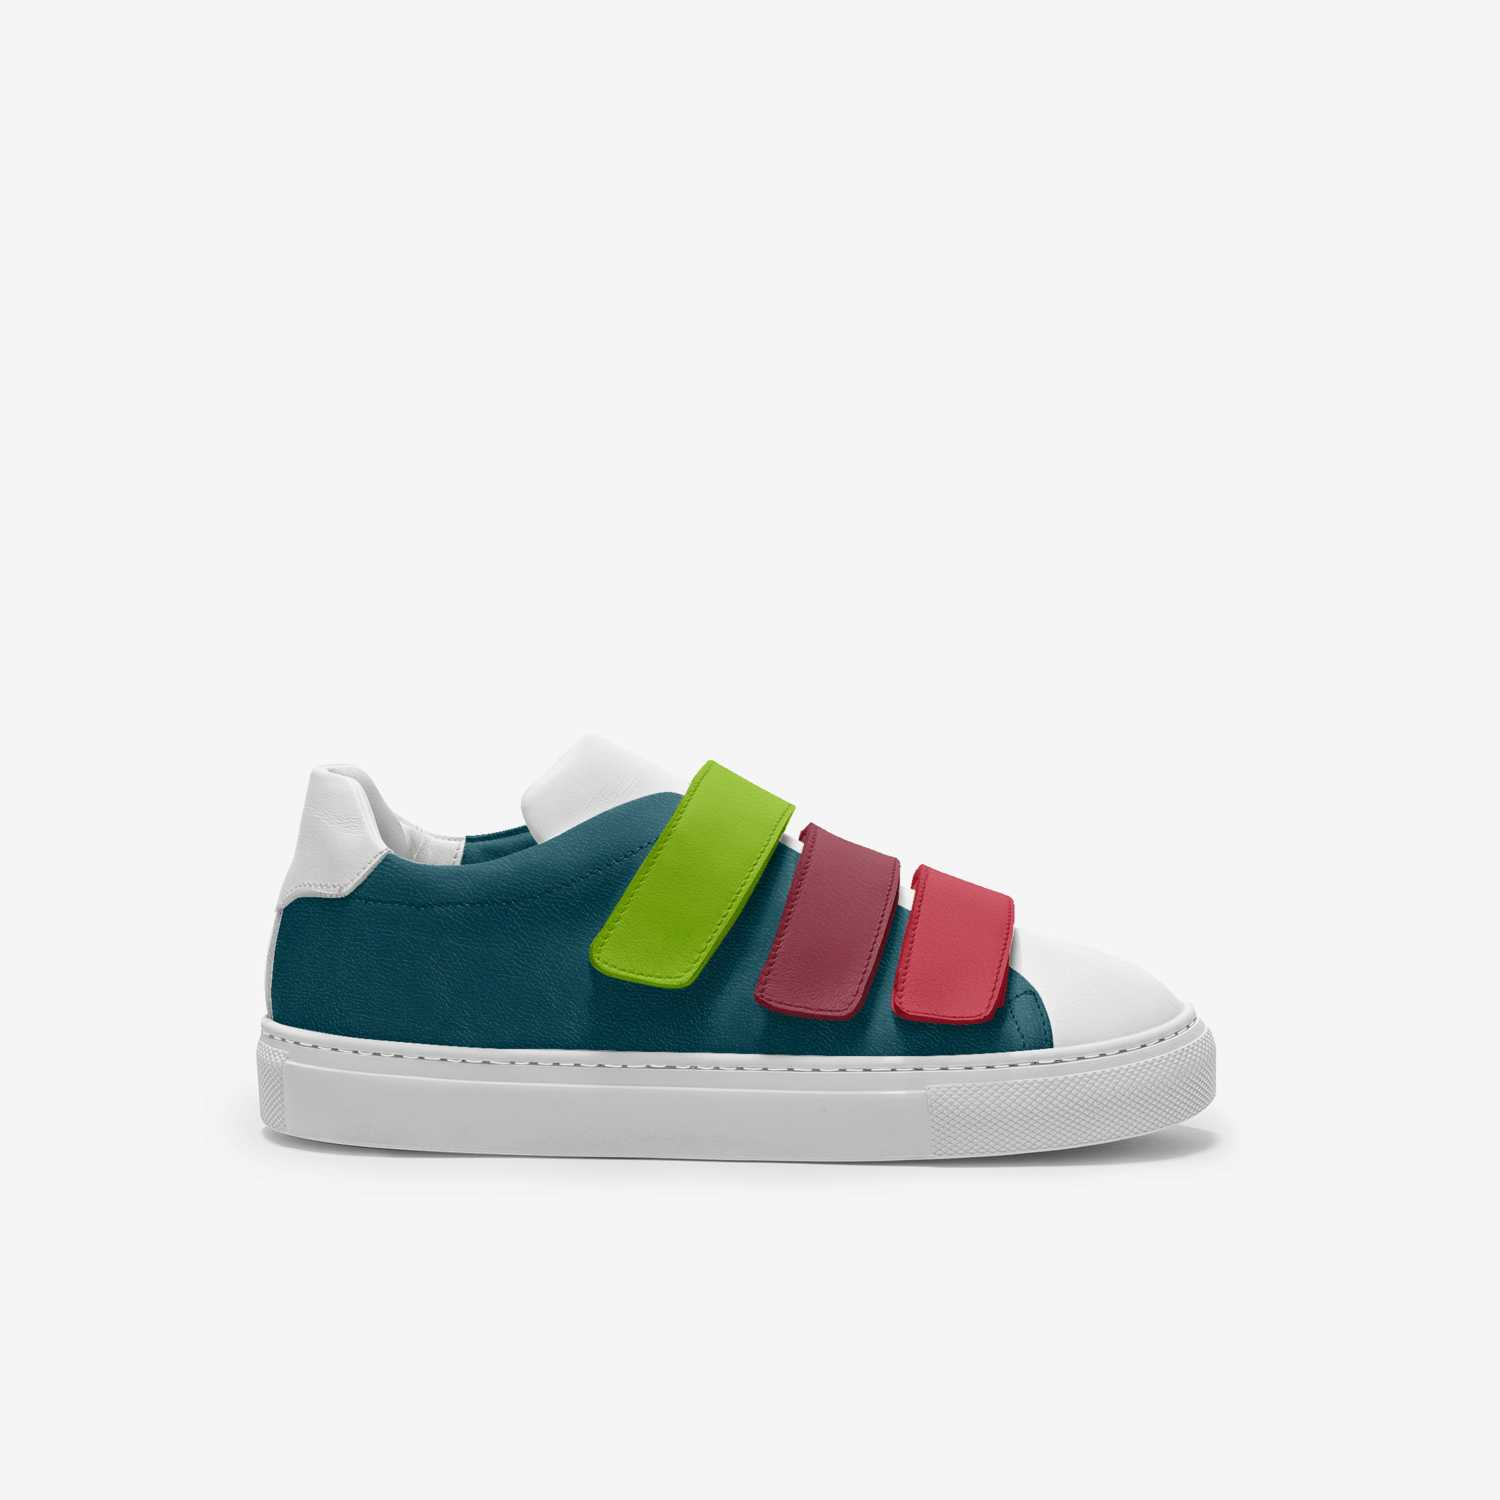 x3r custom made in Italy shoes by Test Pre-orders Unassigned | Side view